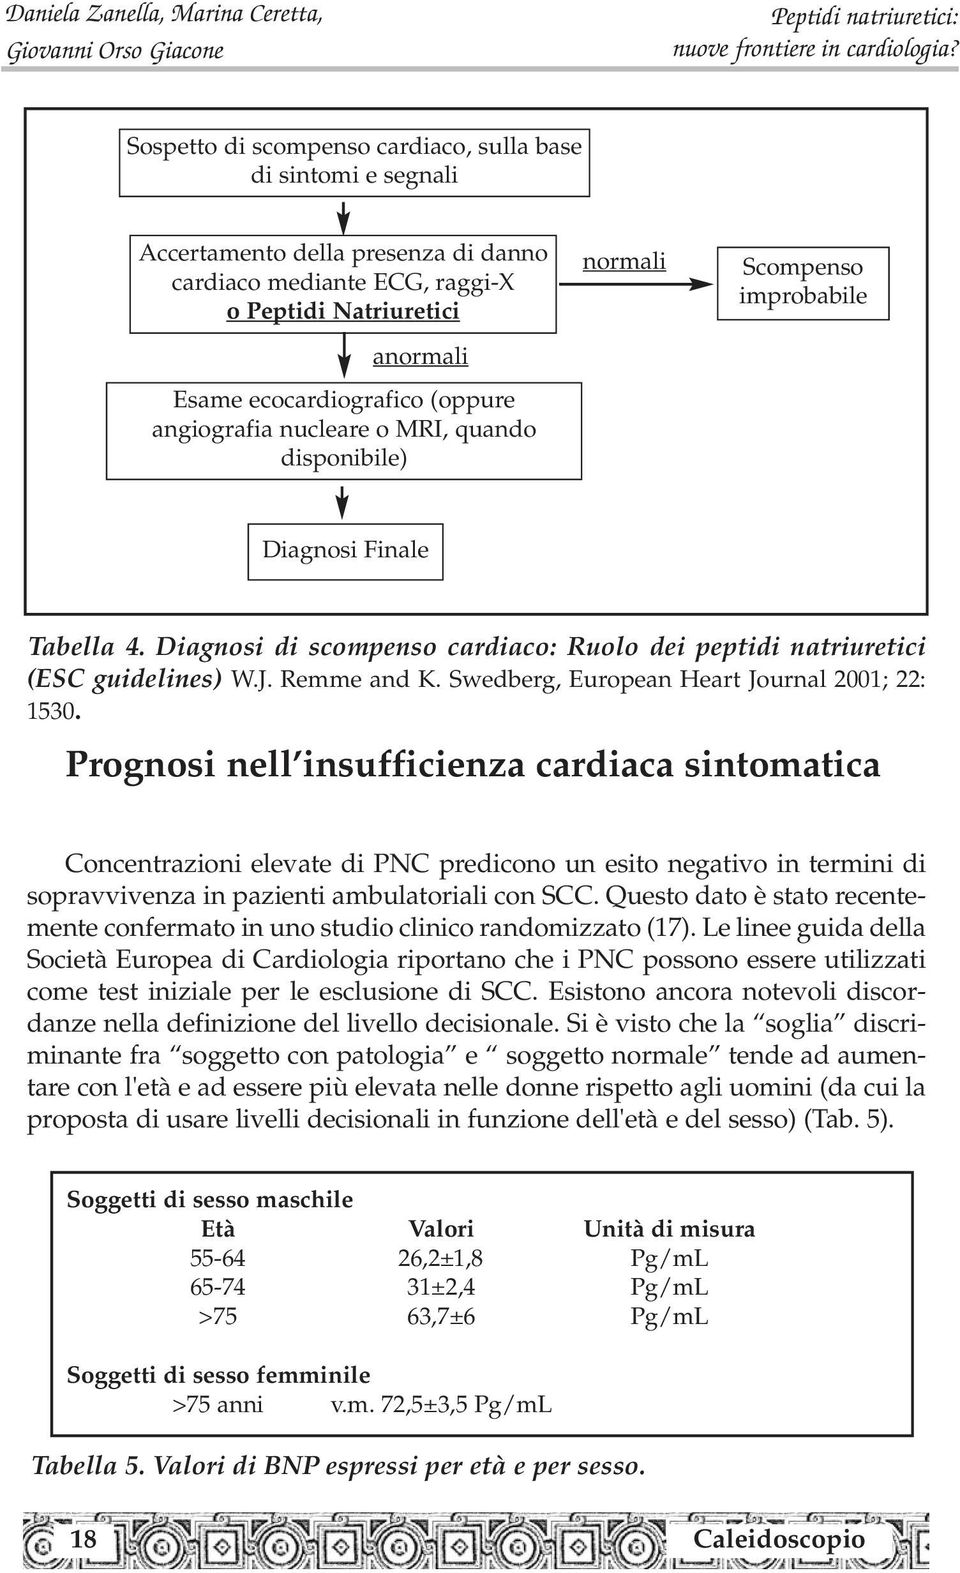 Remme and K. Swedberg, European Heart Journal 2001; 22: 1530.